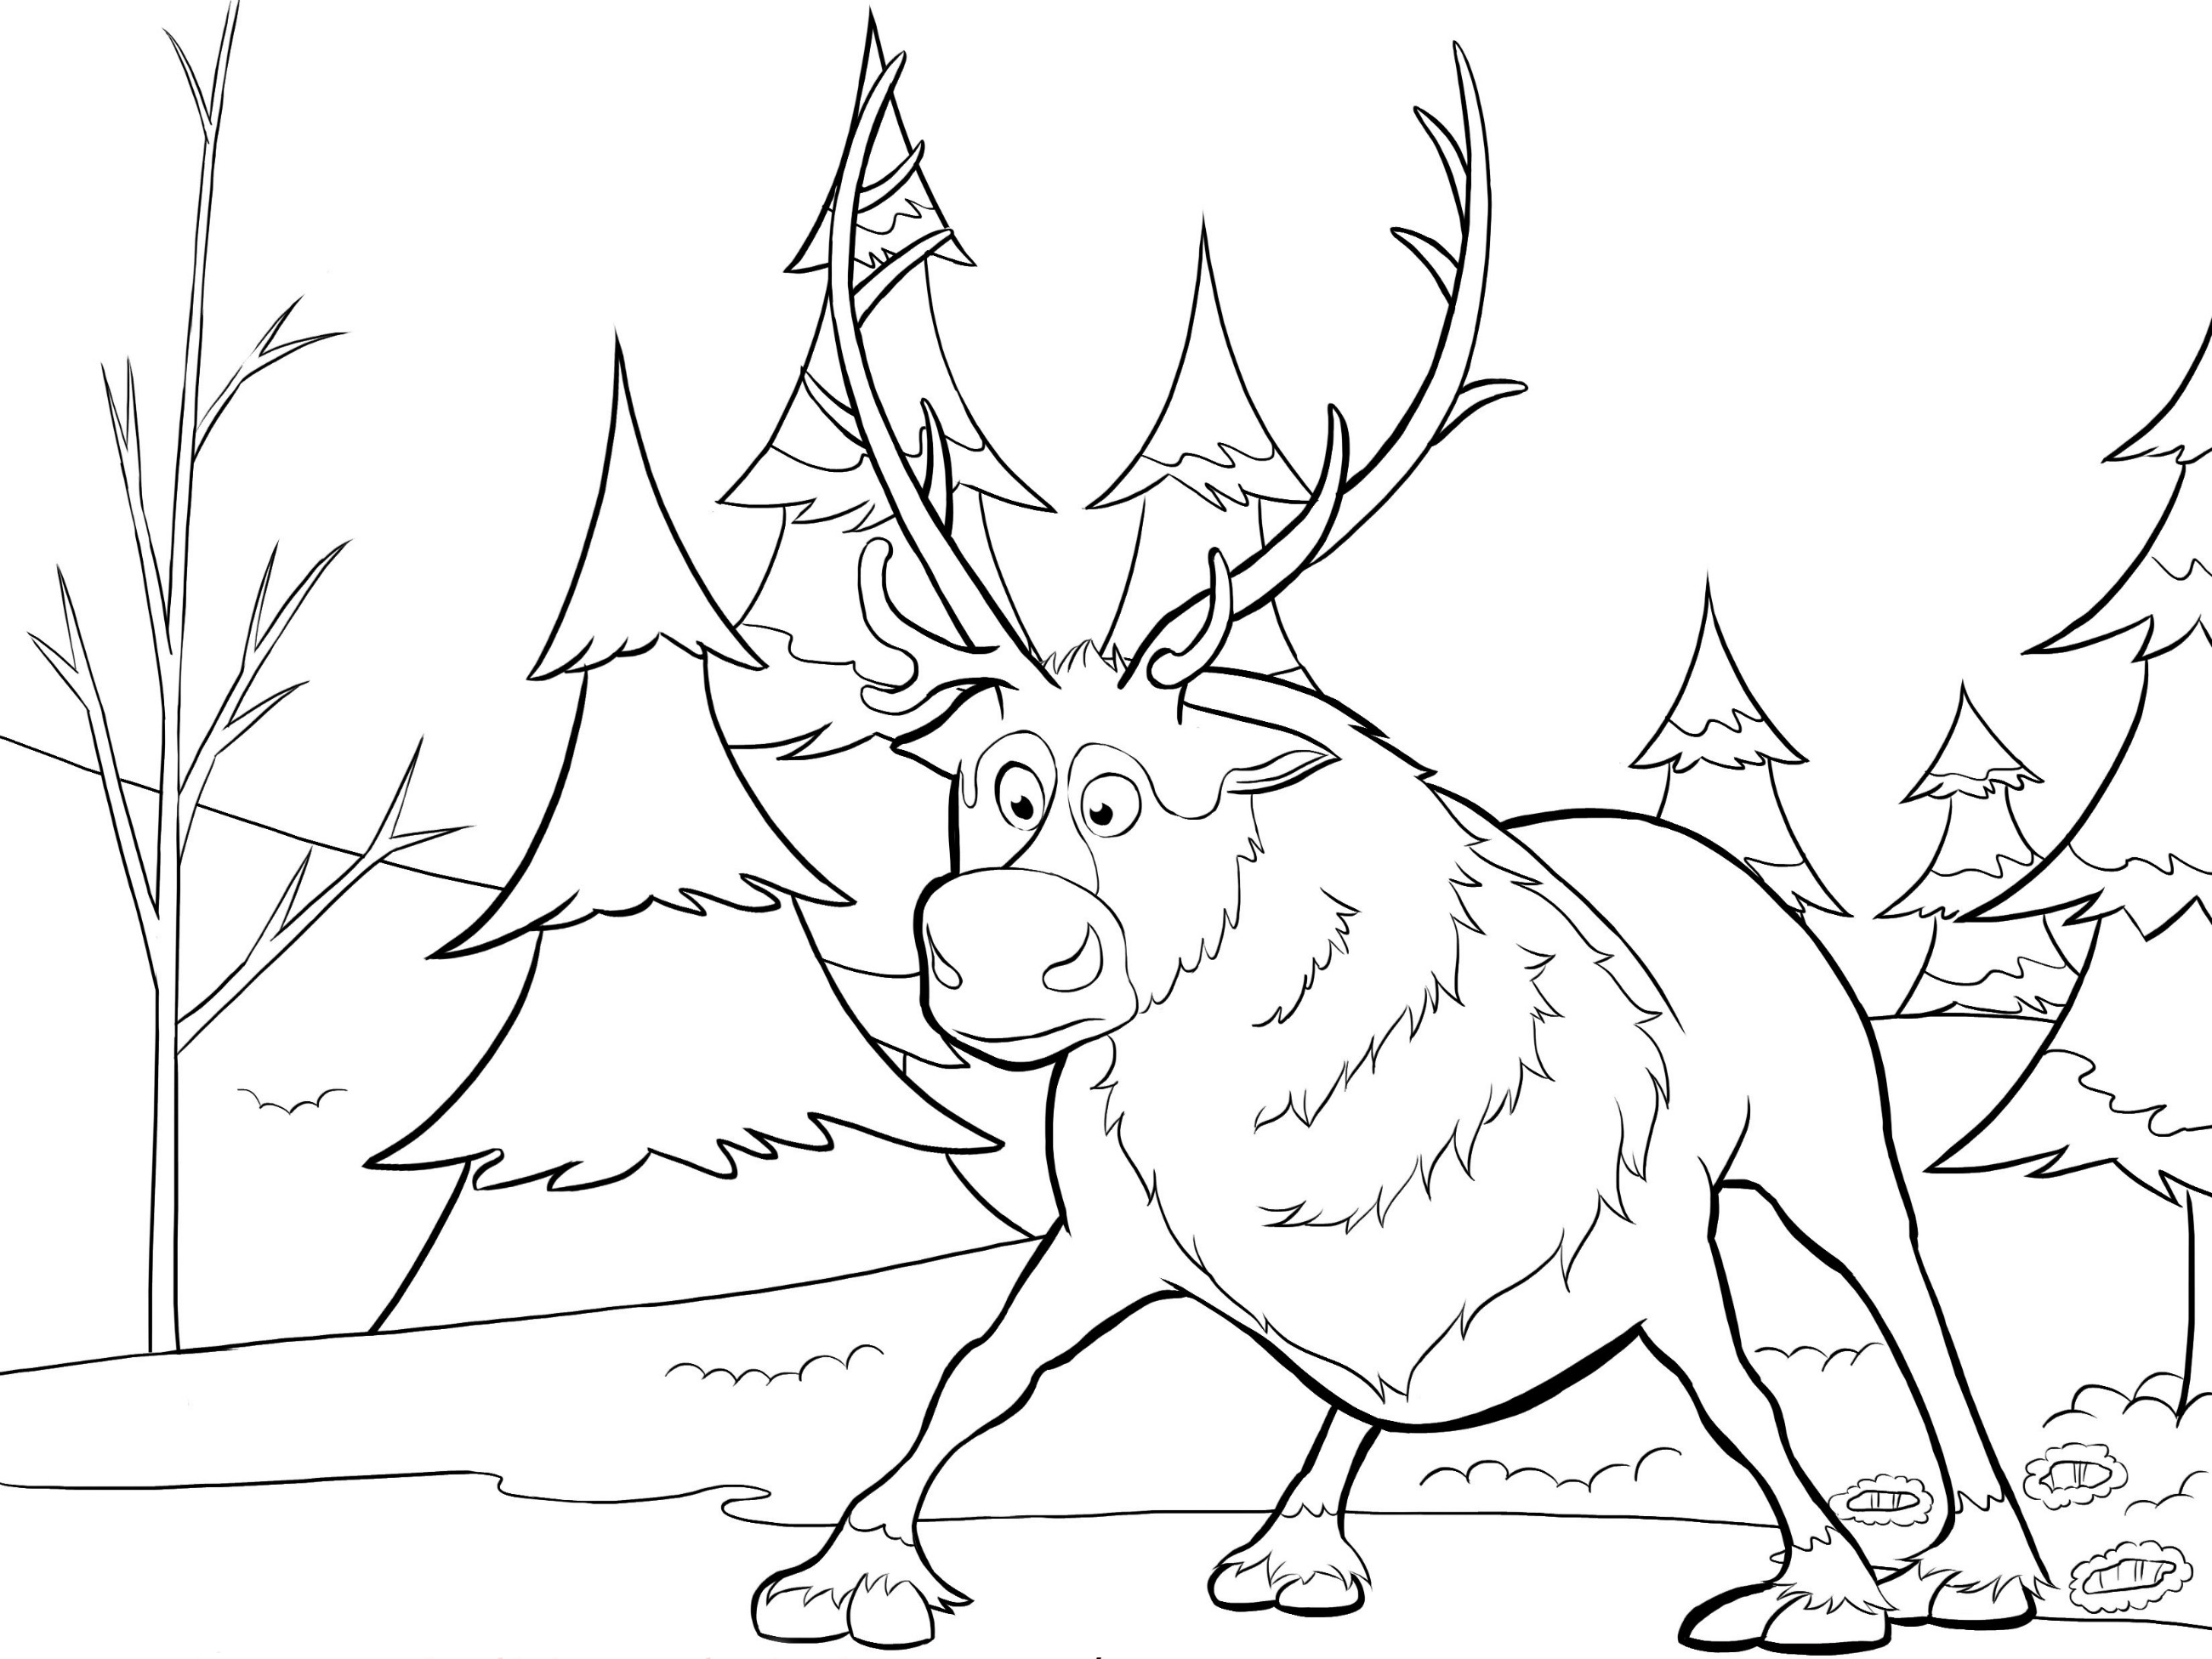 disney frozen sven drawing - photo #41